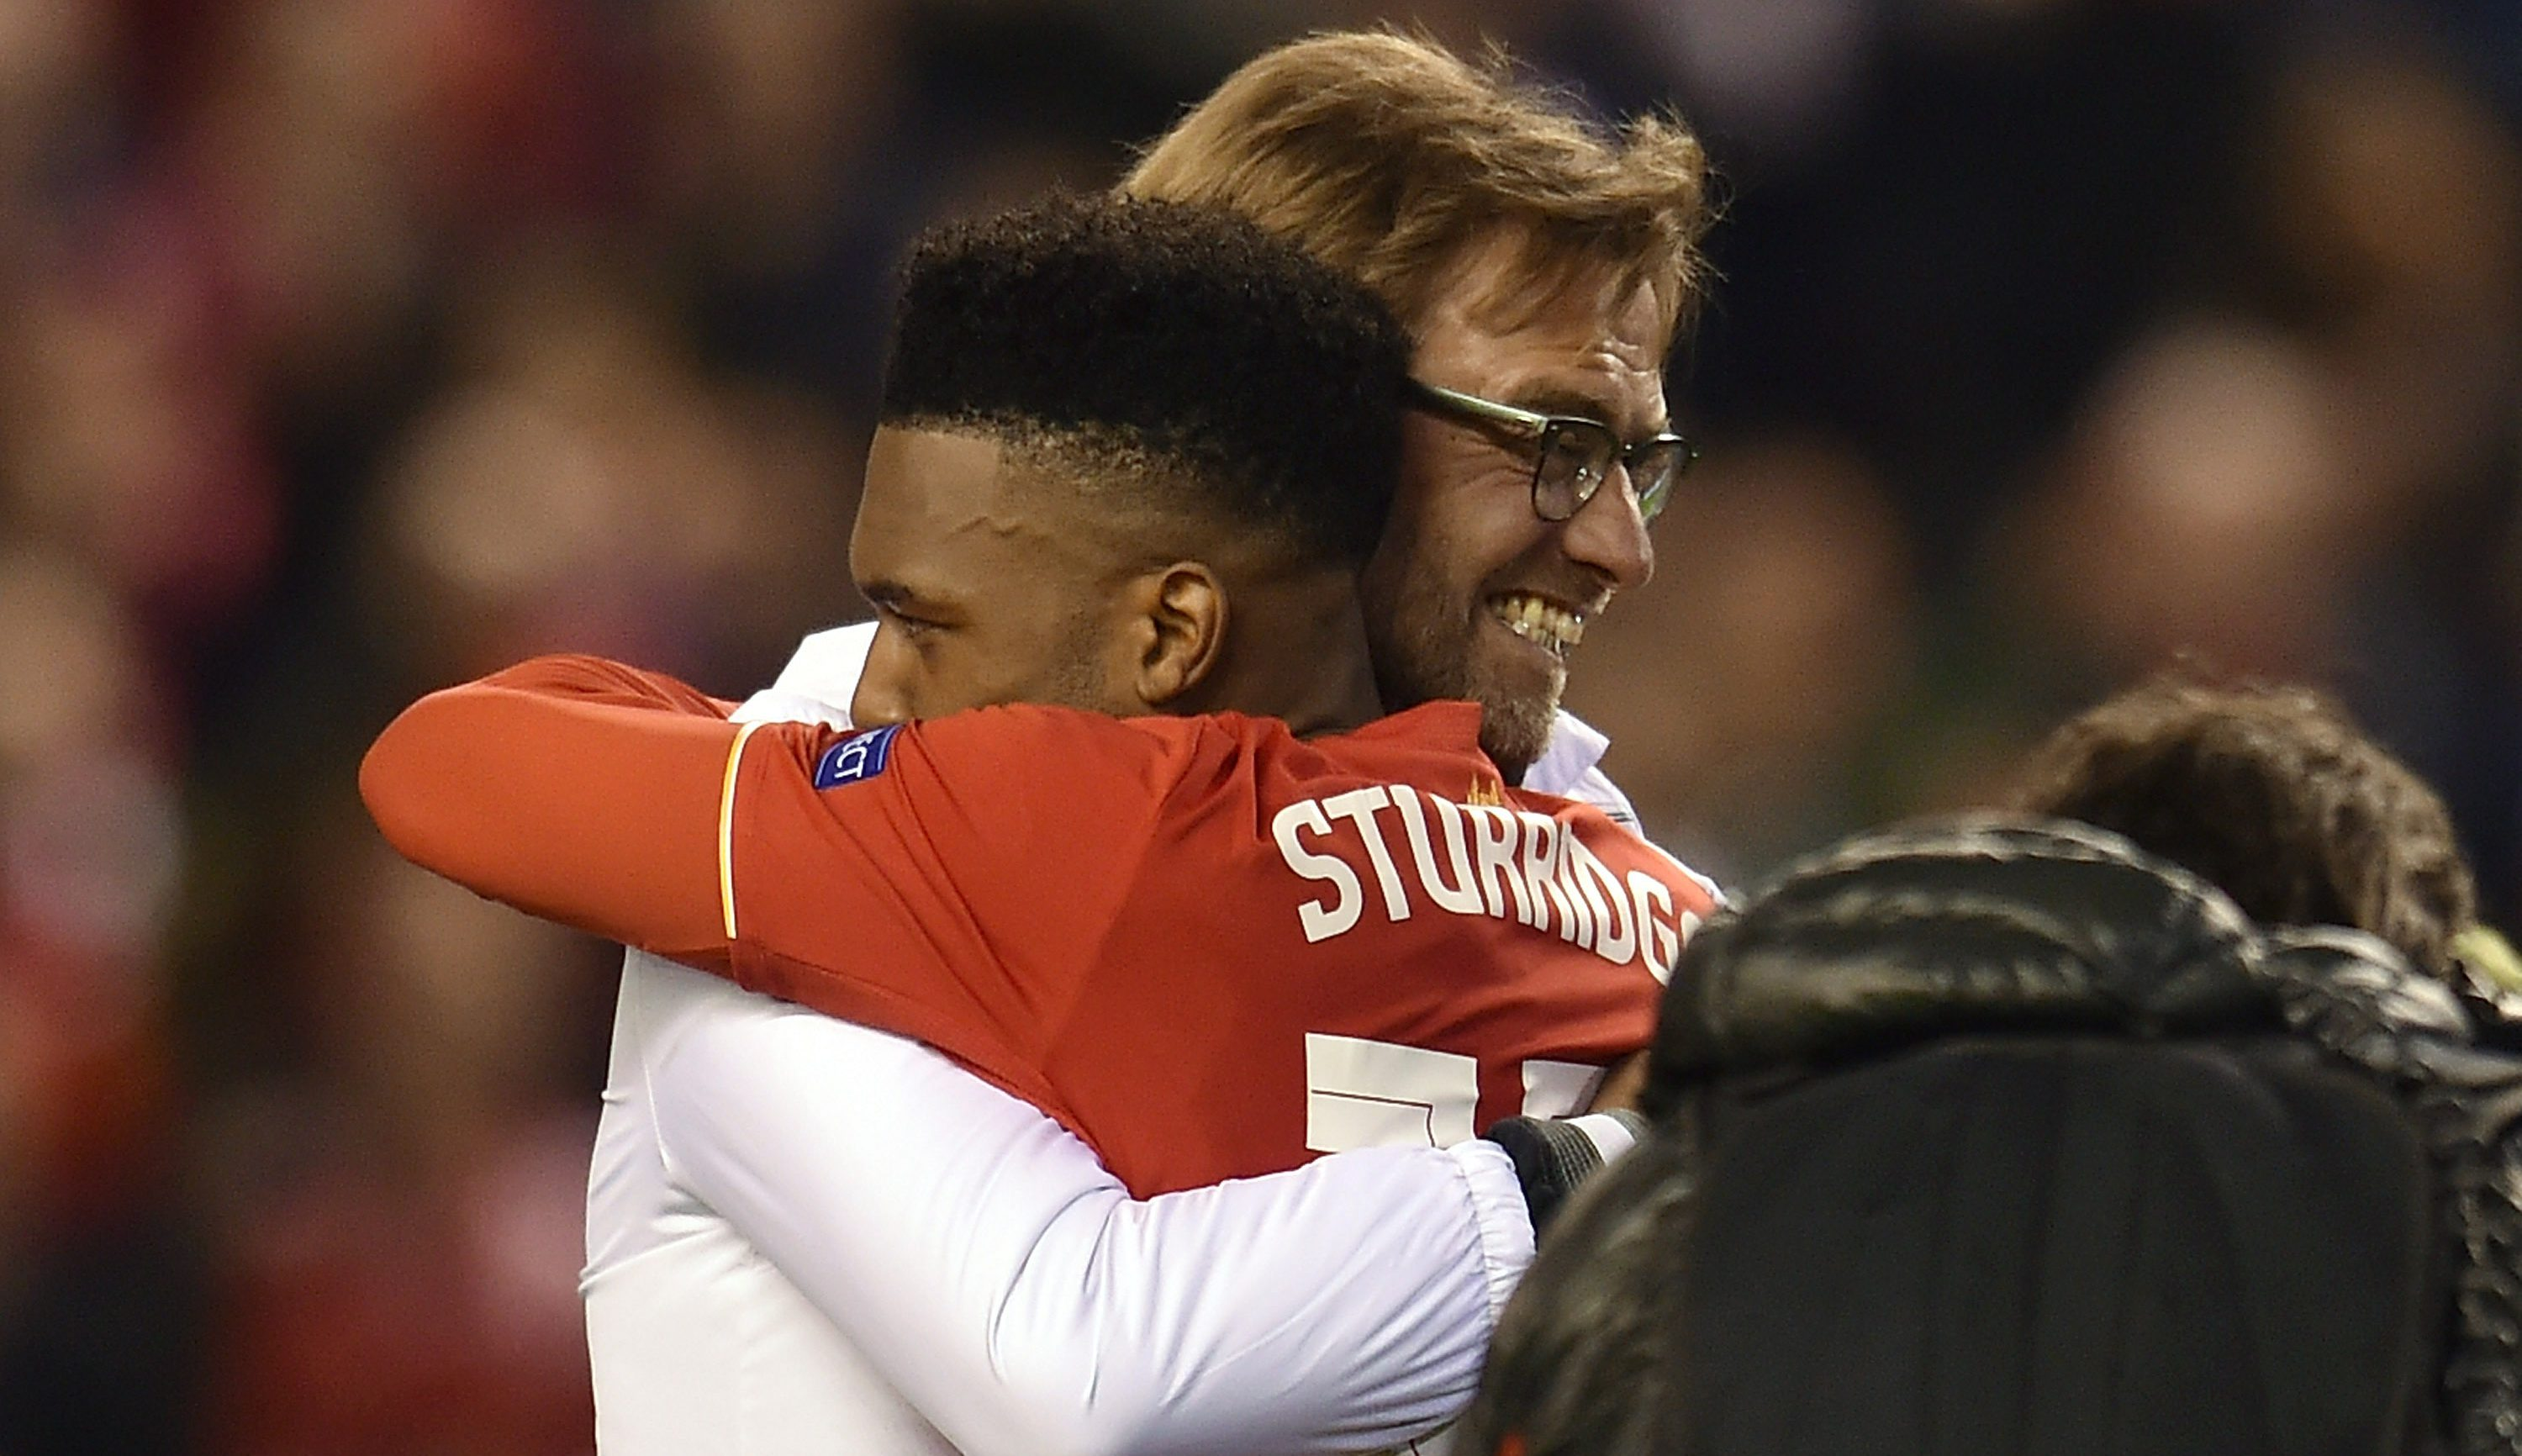 LIVERPOOL, ENGLAND - MAY 05: (THE SUN OUT, THE SUN ON SUNDAY OUT) Jurgen Klopp manager of Liverpool embraces Daniel Sturridge at the end of the UEFA Europa League Semi Final: Second Leg match between Liverpool and Villarreal CF at Anfield on May 05, 2016 in Liverpool, England. (Photo by Andrew Powell/Liverpool FC via Getty Images)